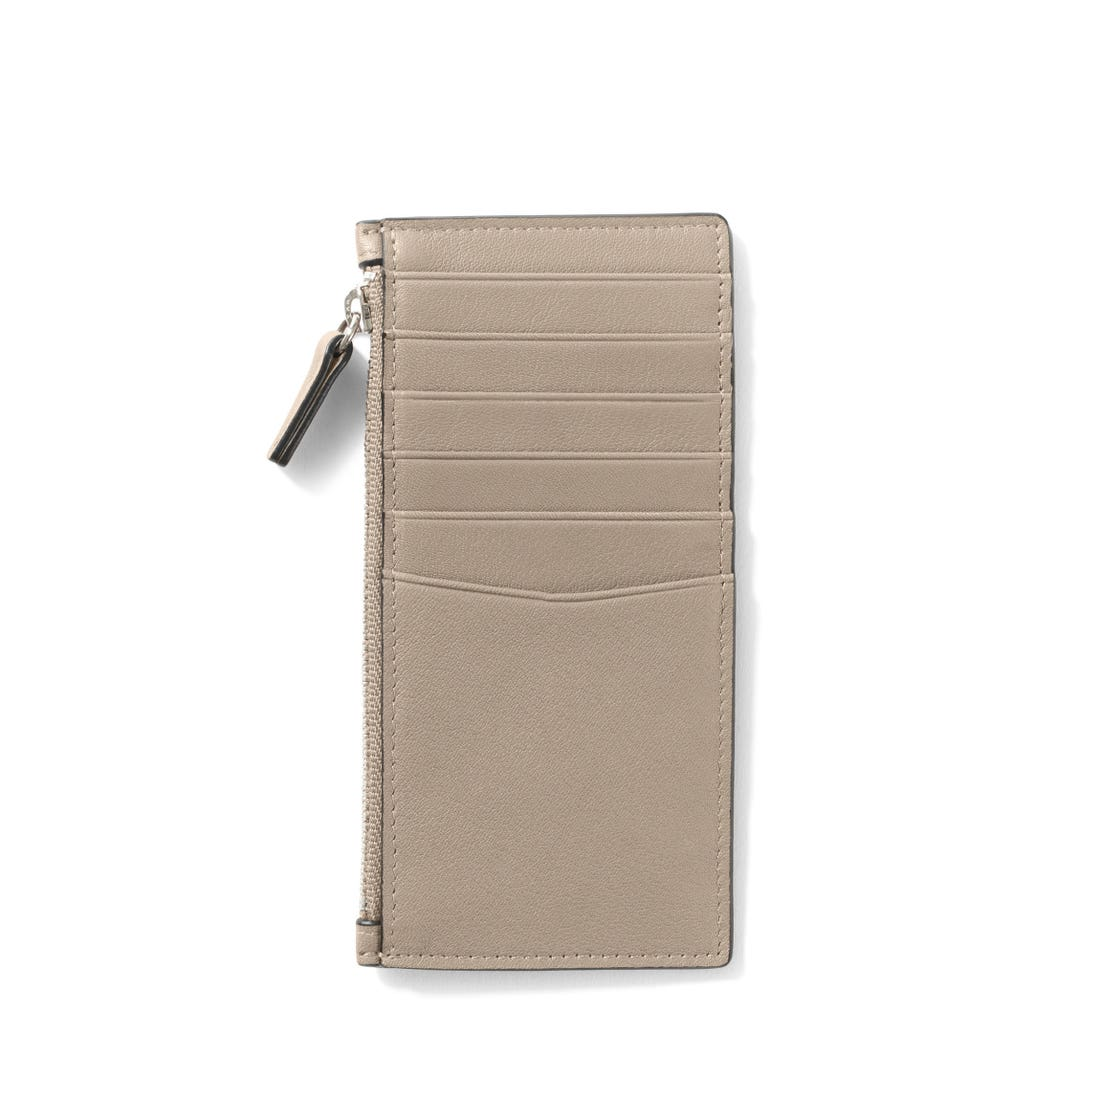 Devon Slim Zip Card Case